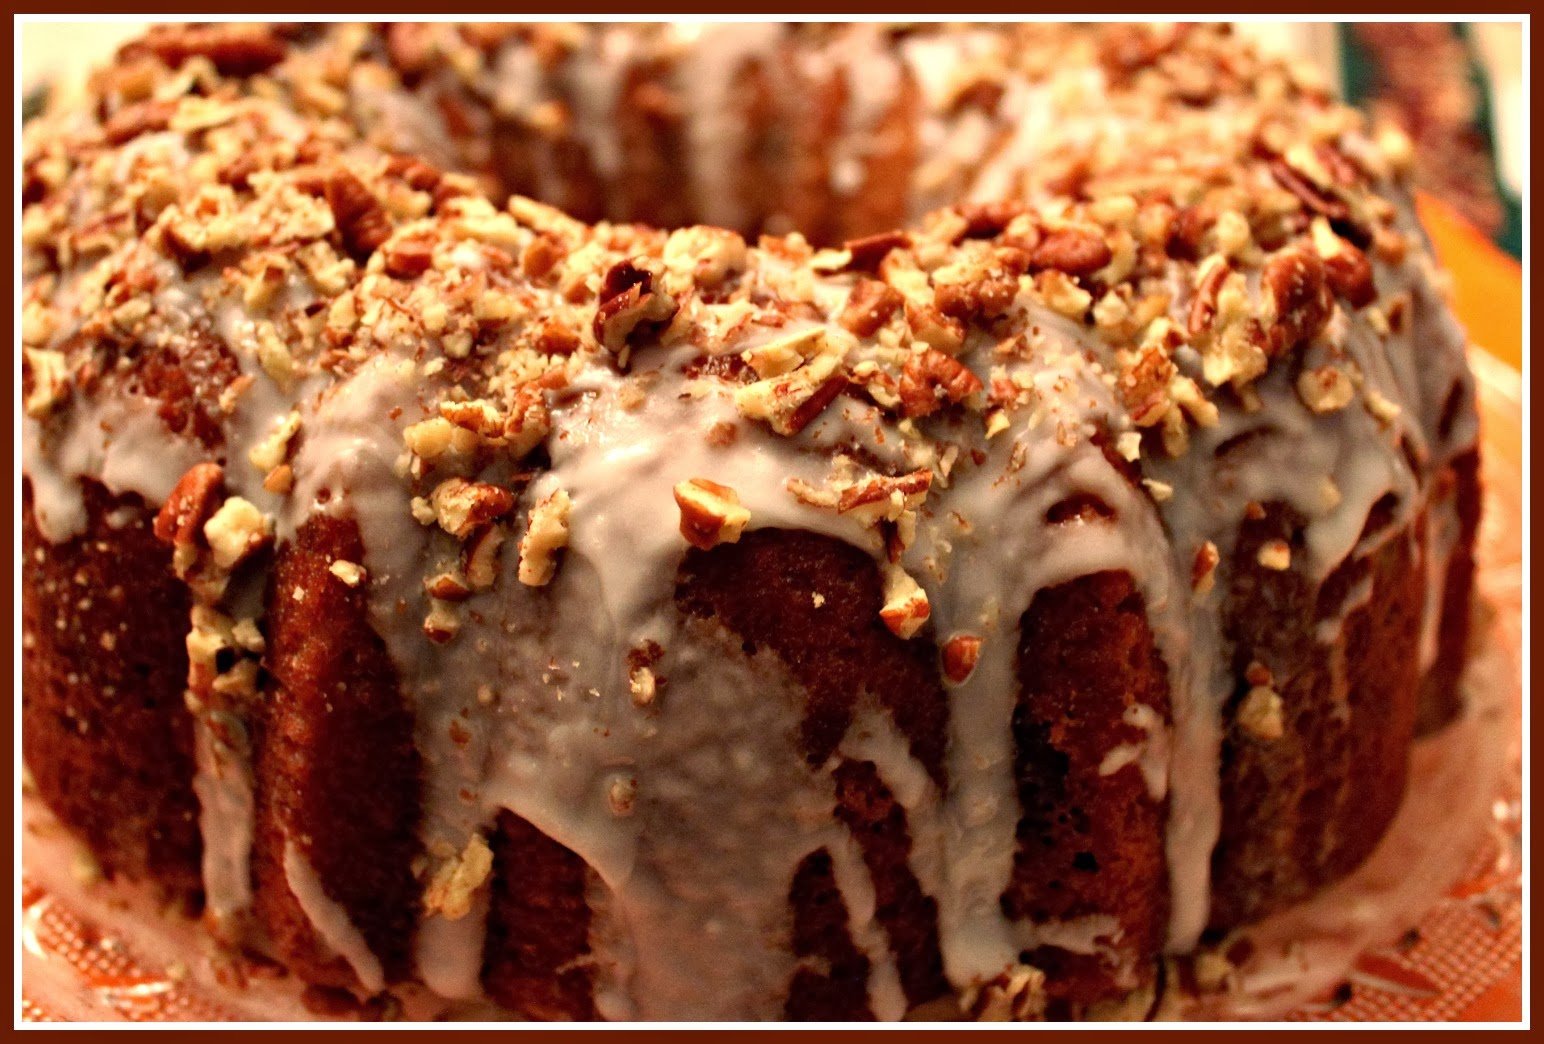 Pinterest Banana Nut Cake Cake Mix Bundt Pan